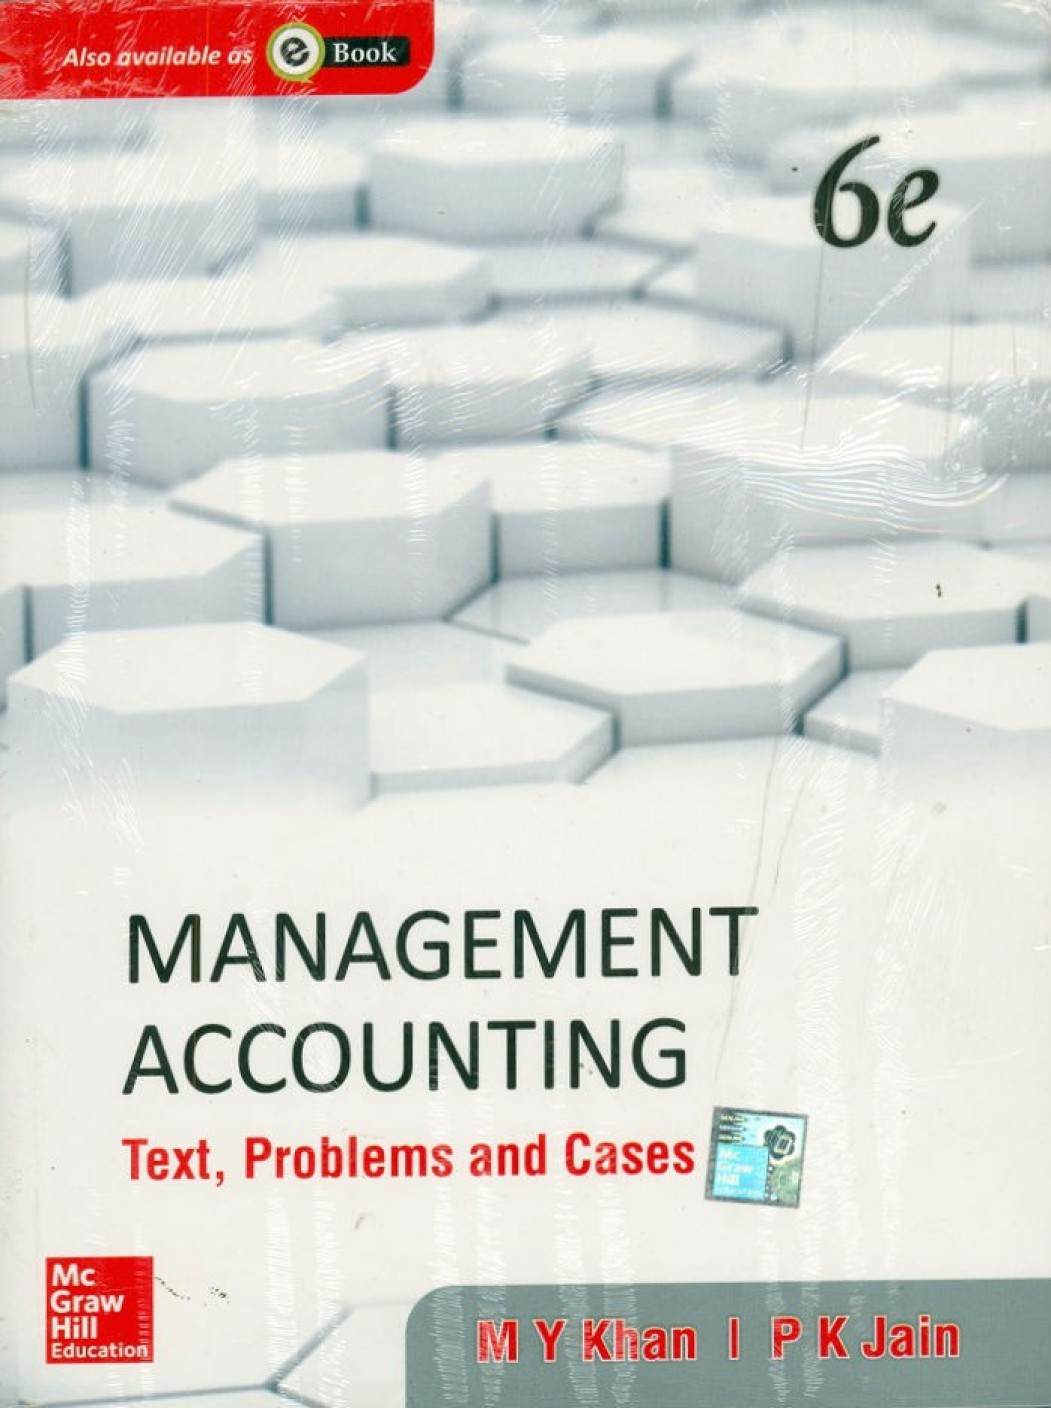 Solution manual on Accounting; Text and Cases 12th Edition by Anthony, Hawkins, Merch